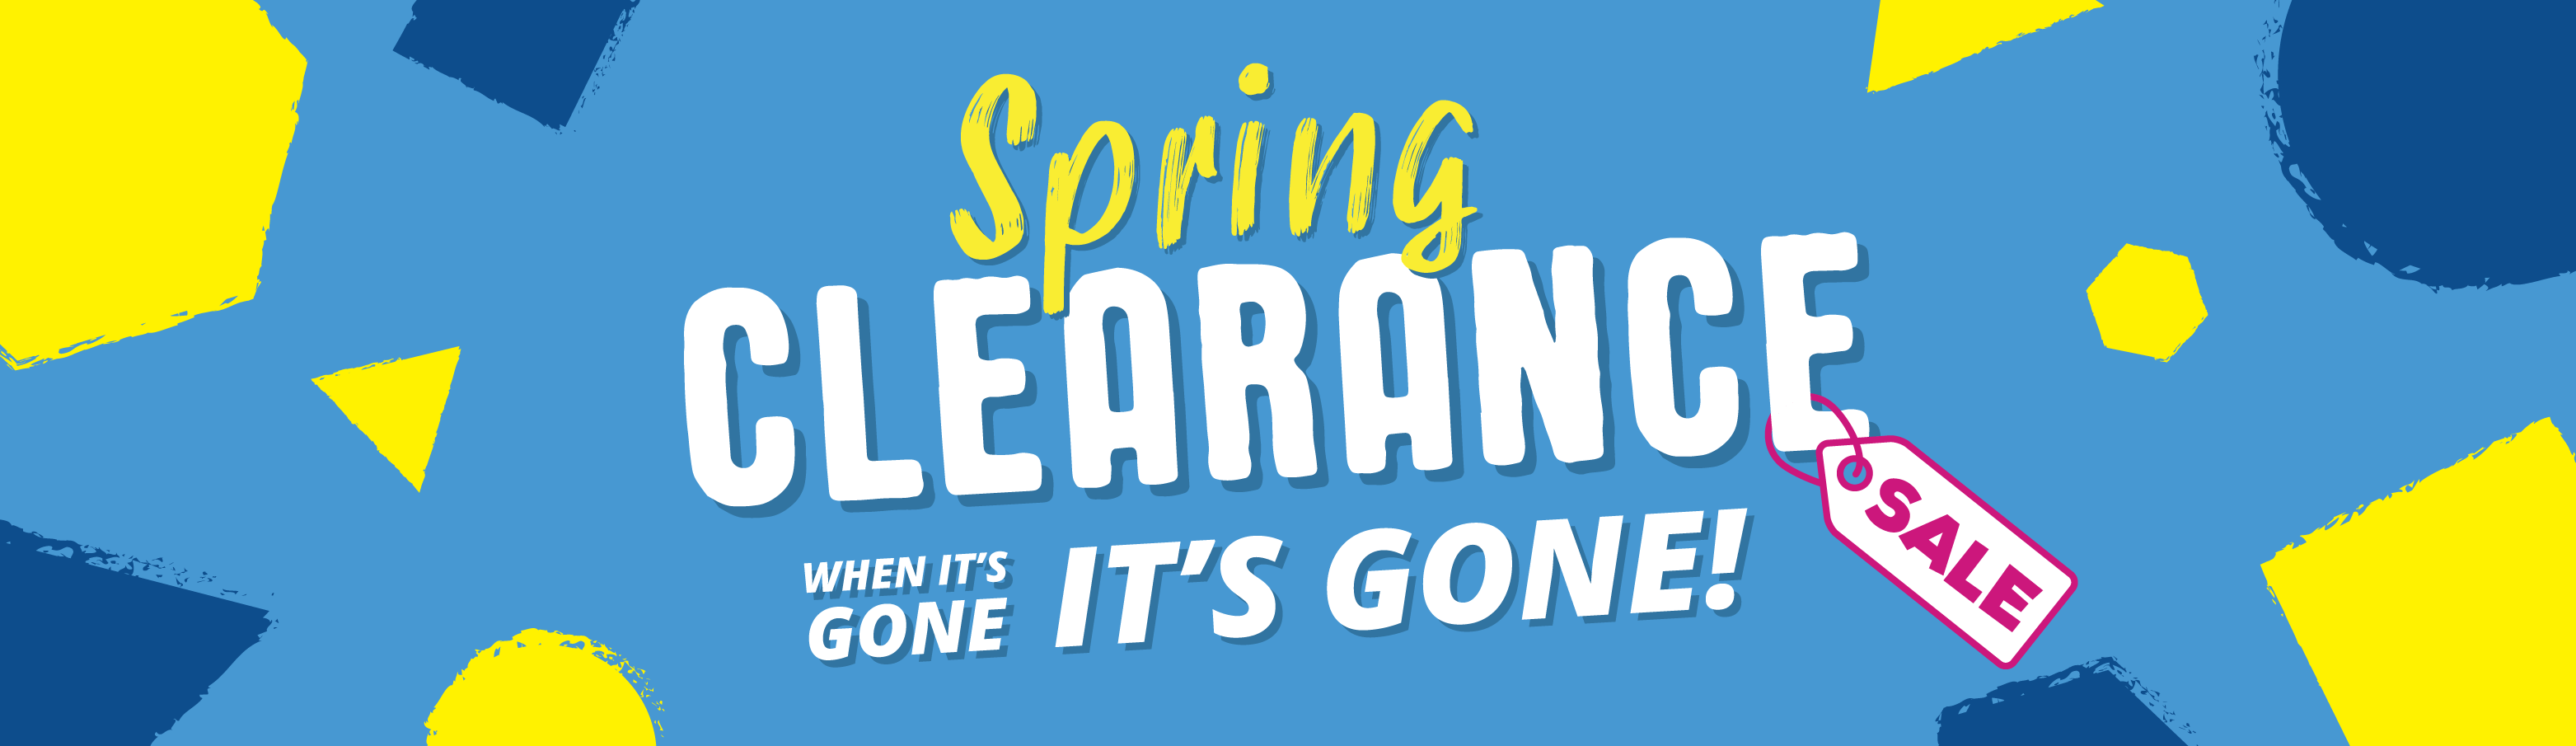 The Craft Store Spring Clearance Sale Offer